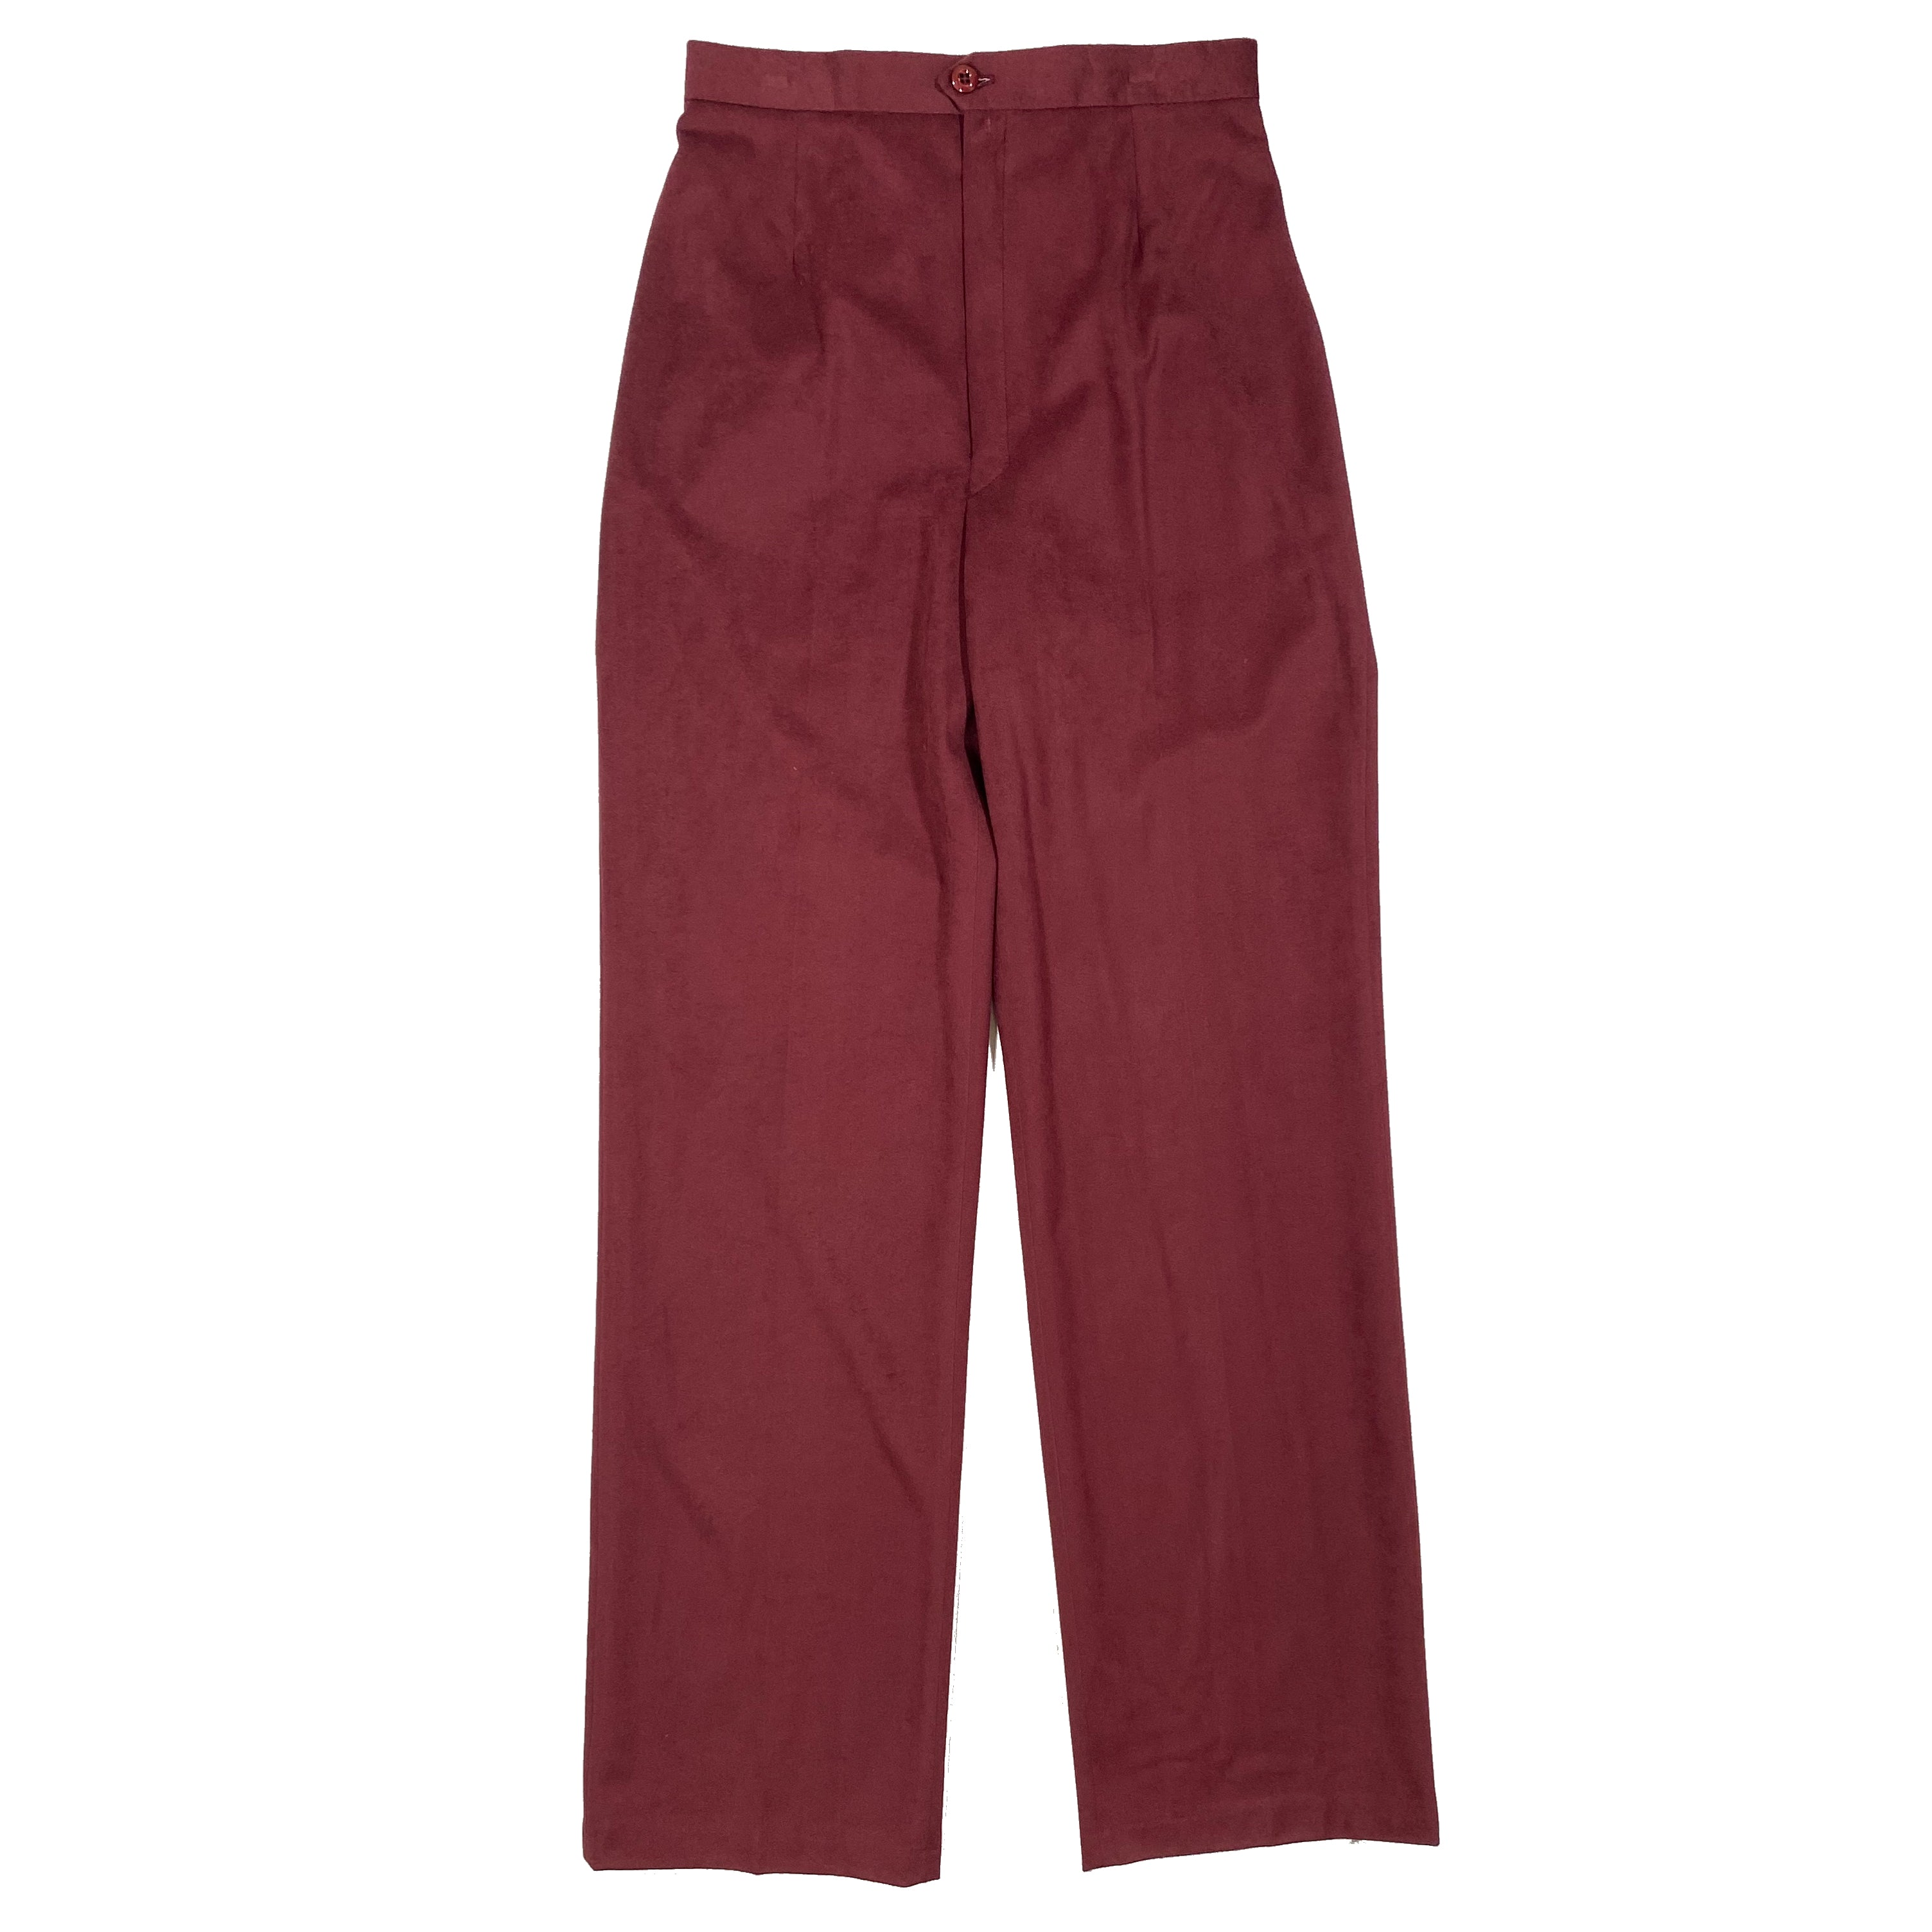 Second Room Vintage Clothing. Vintage 1970s deadstock, burgundy, high waist straight leg pants, with flat front and no pockets. These are in a soft, faux suede like material, with elastic at the back waistband, and original factory style tag still attached. Free North American shipping on all orders.